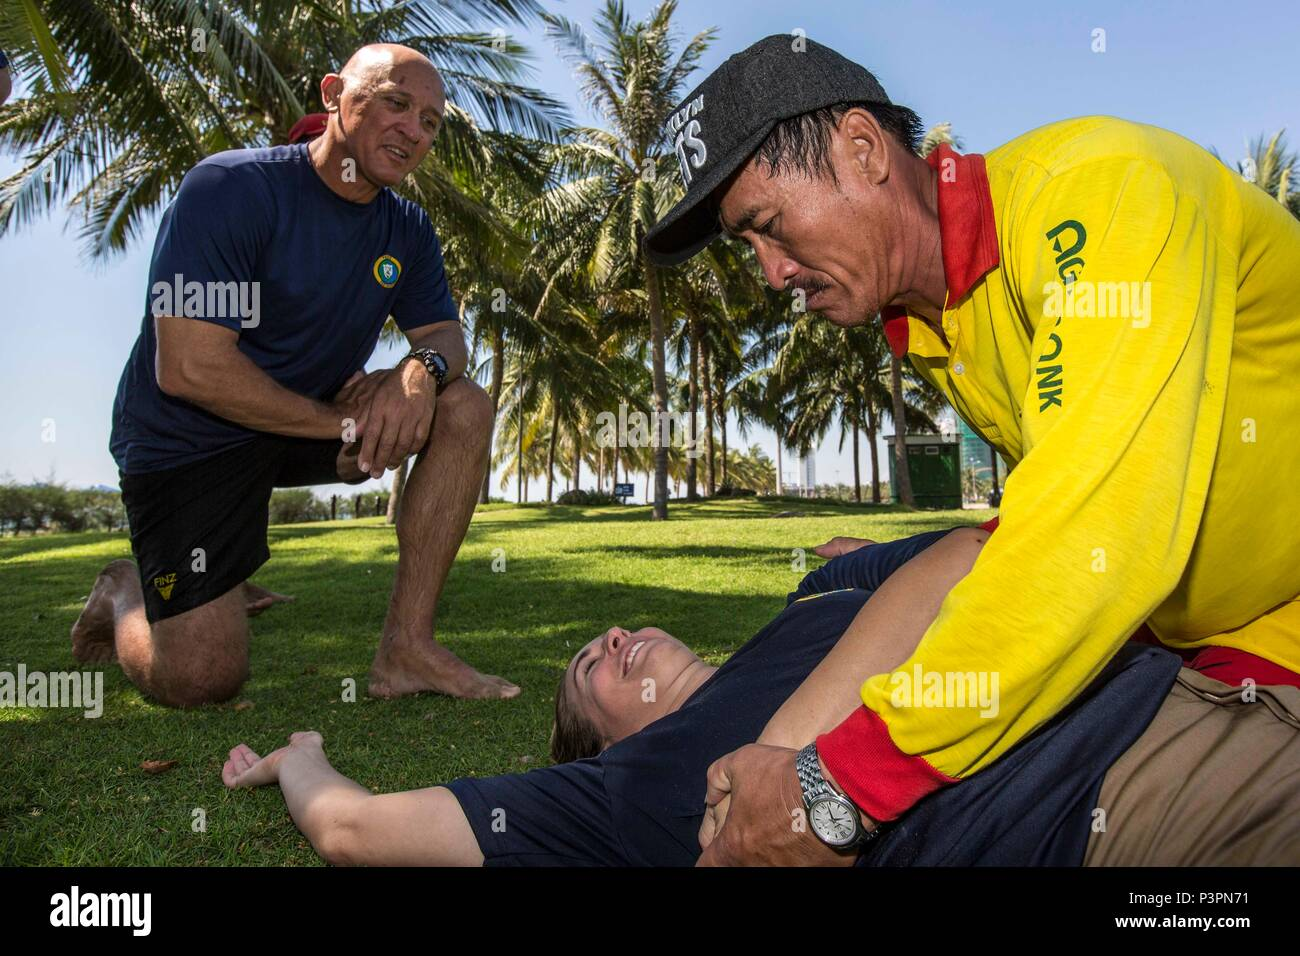 160721-N-CV785-101 DA NANG, Vietnam (July 21, 2016) Australian Army personnel Capt. Peter Conrad (left) and Sgt. Kate Hall instruct cardiopulmonary resuscitation techniques to a Vietnamese lifeguard, during a community relation event, as part of Pacific Partnership 2016. Community relation events bring together the local community and Pacific Partnership personnel and are an essential component of the mission that allow for direct engagement. Partner nations are working side-by-side with local organizations to conduct cooperative health engagements, community relation events and subject matter - Stock Image